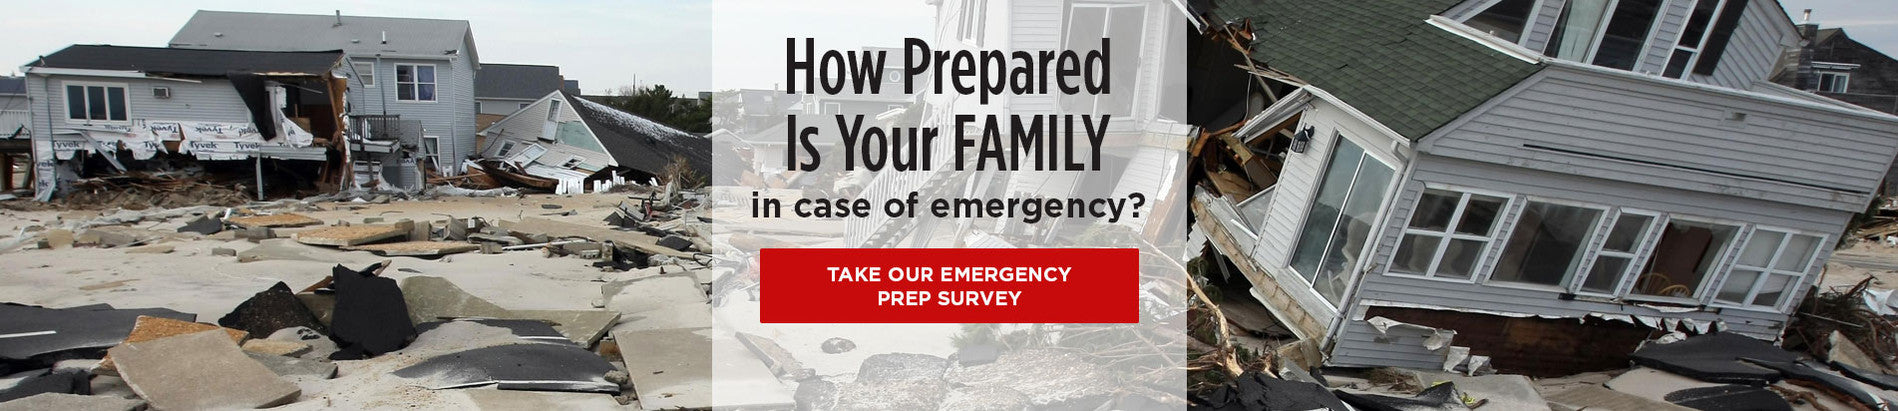 Emergency Prep Survey